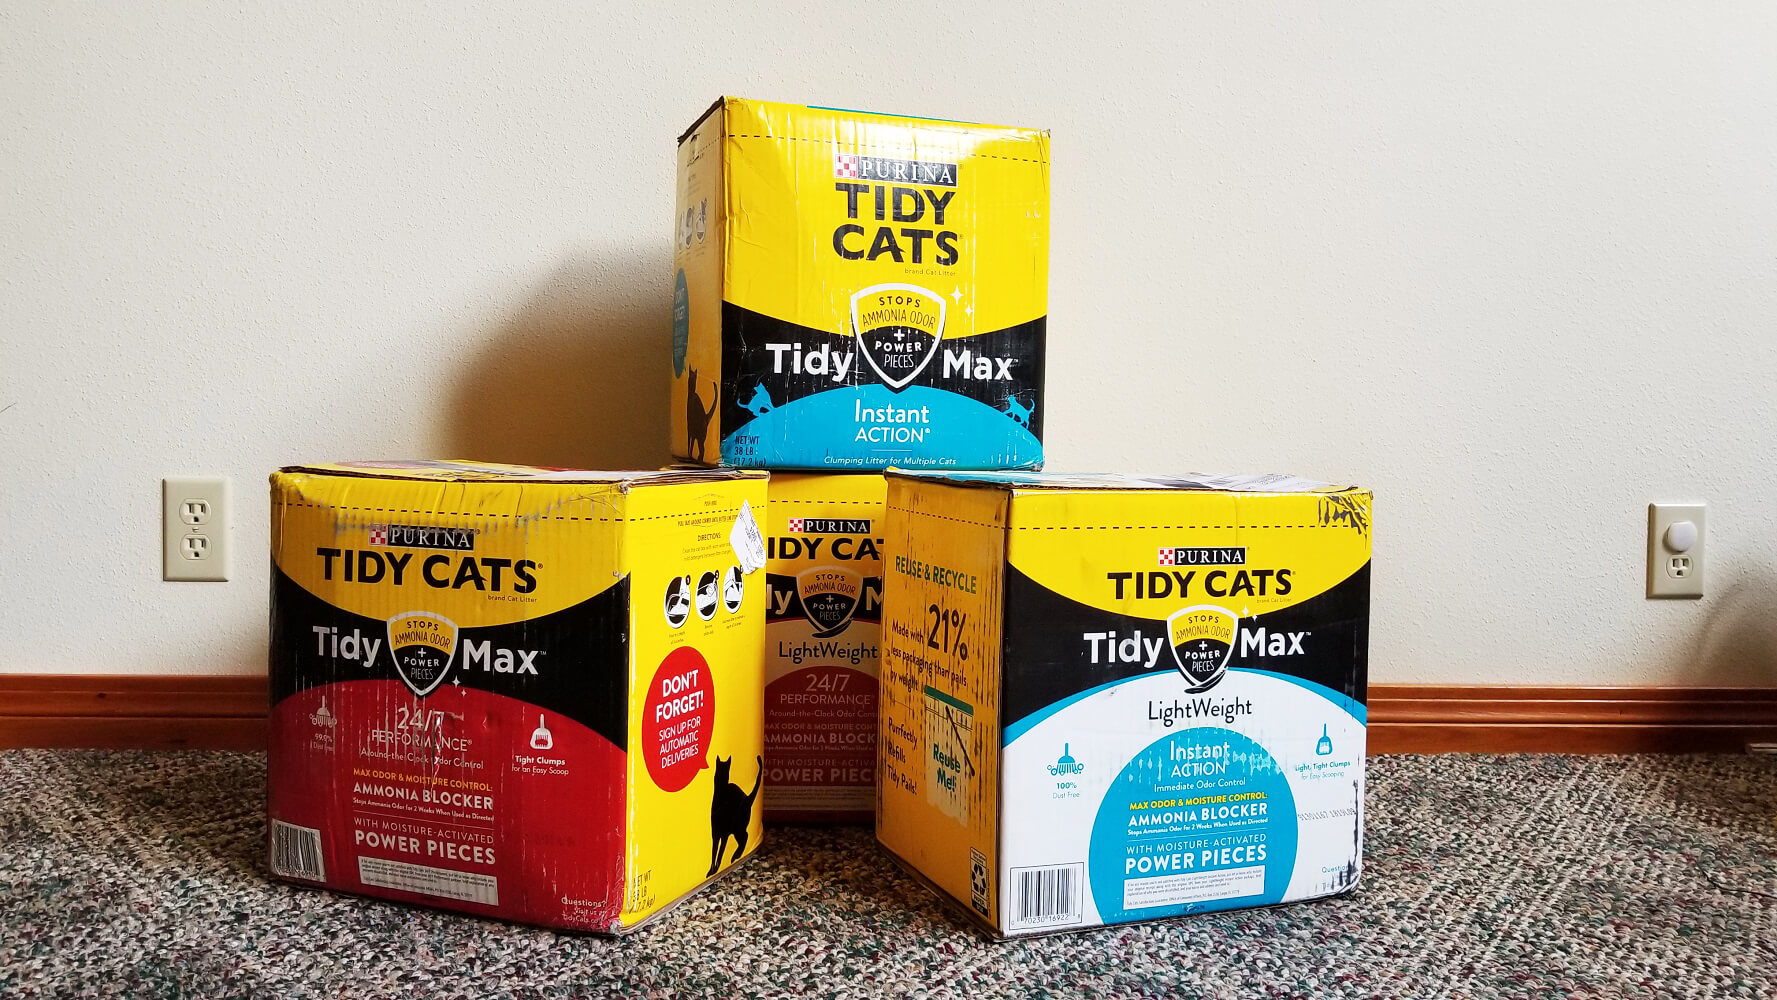 Tidy Max Cat Litter Review We Tried Tidy Cats Online Only